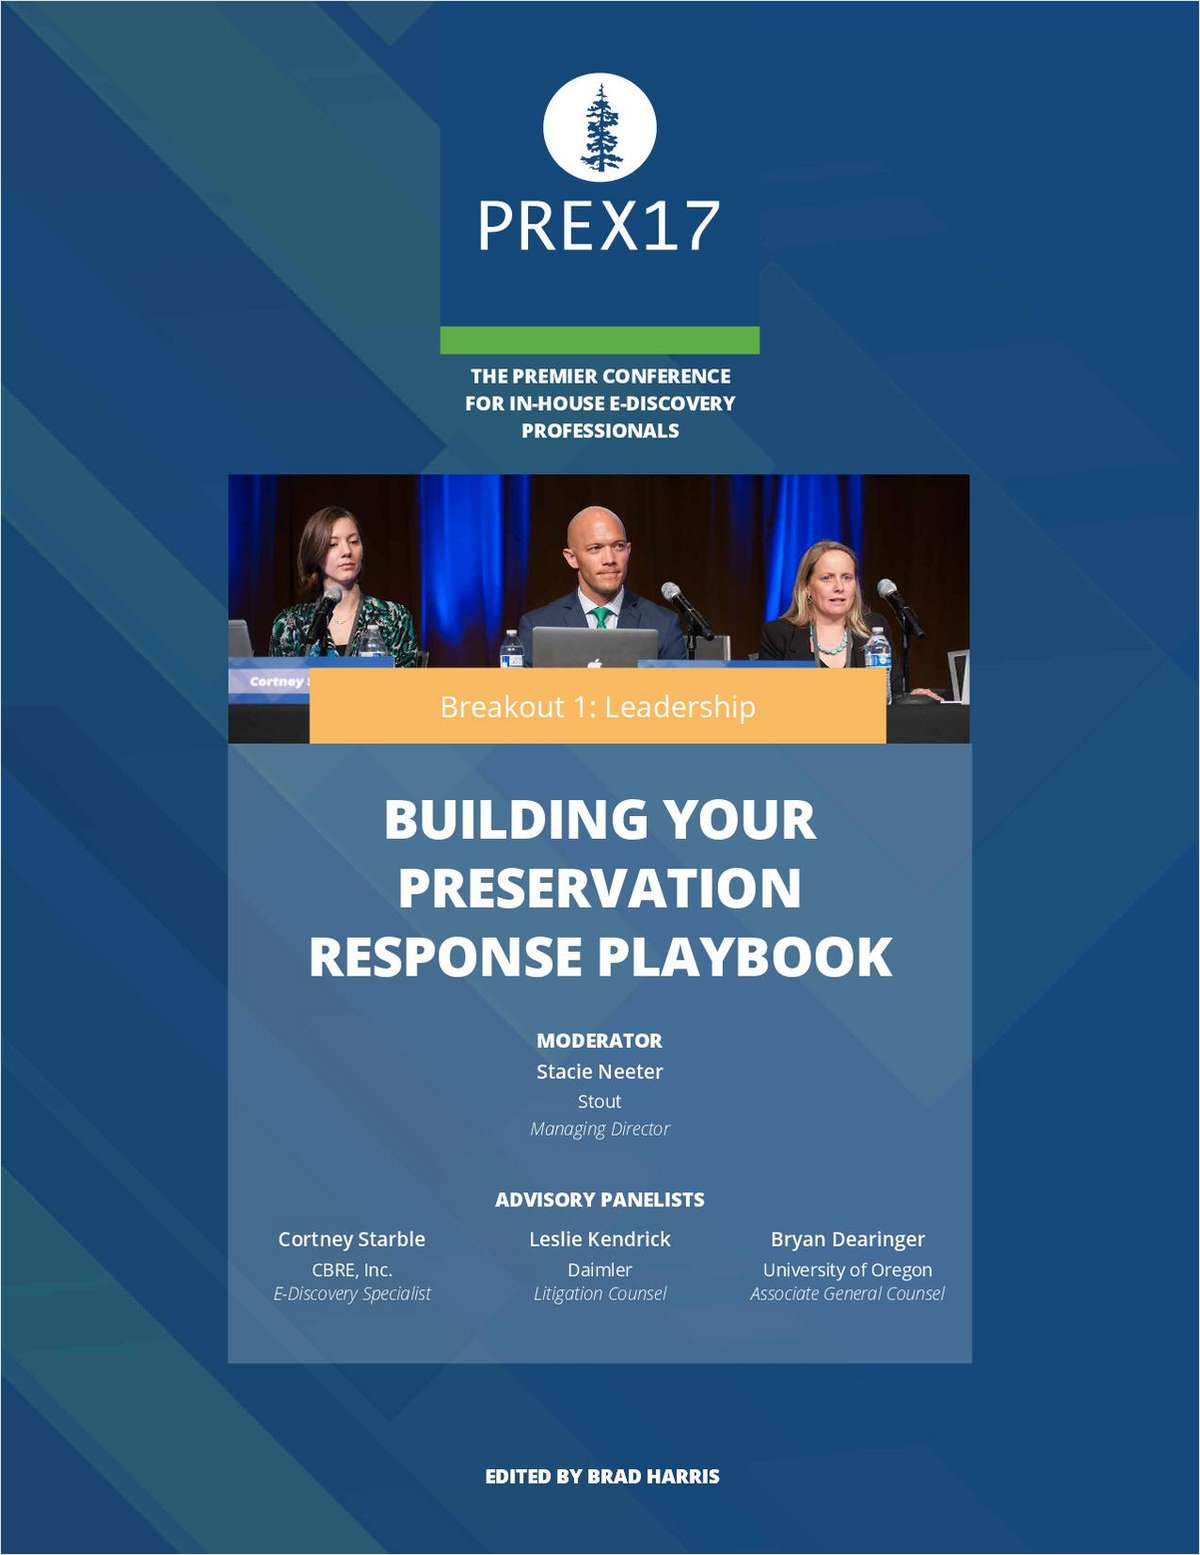 PREX17: Building Your Preservation Playbook